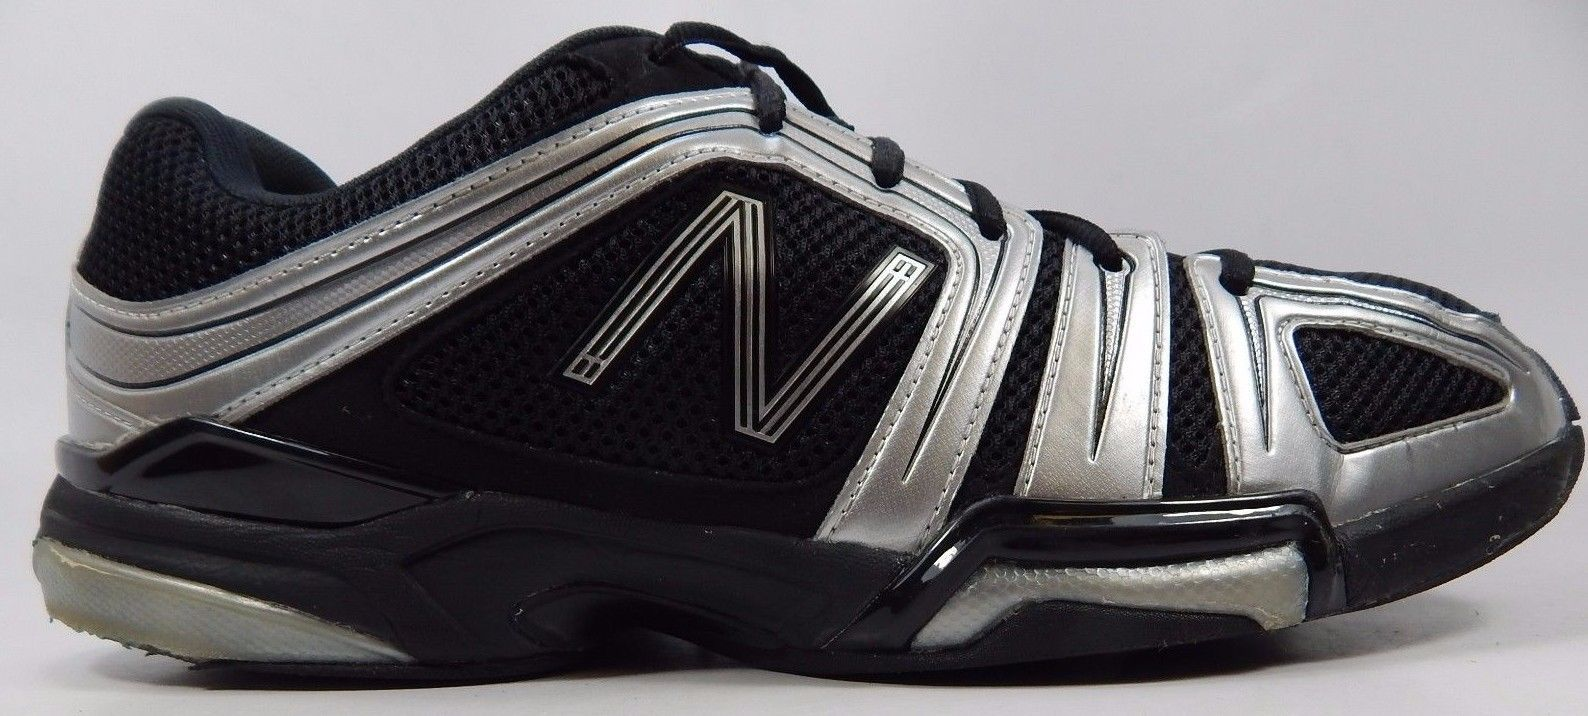 New Balance 1005 Men's Tennis Court Shoes Sz US 12.5 M (D) EU 47 Black MC1005BS